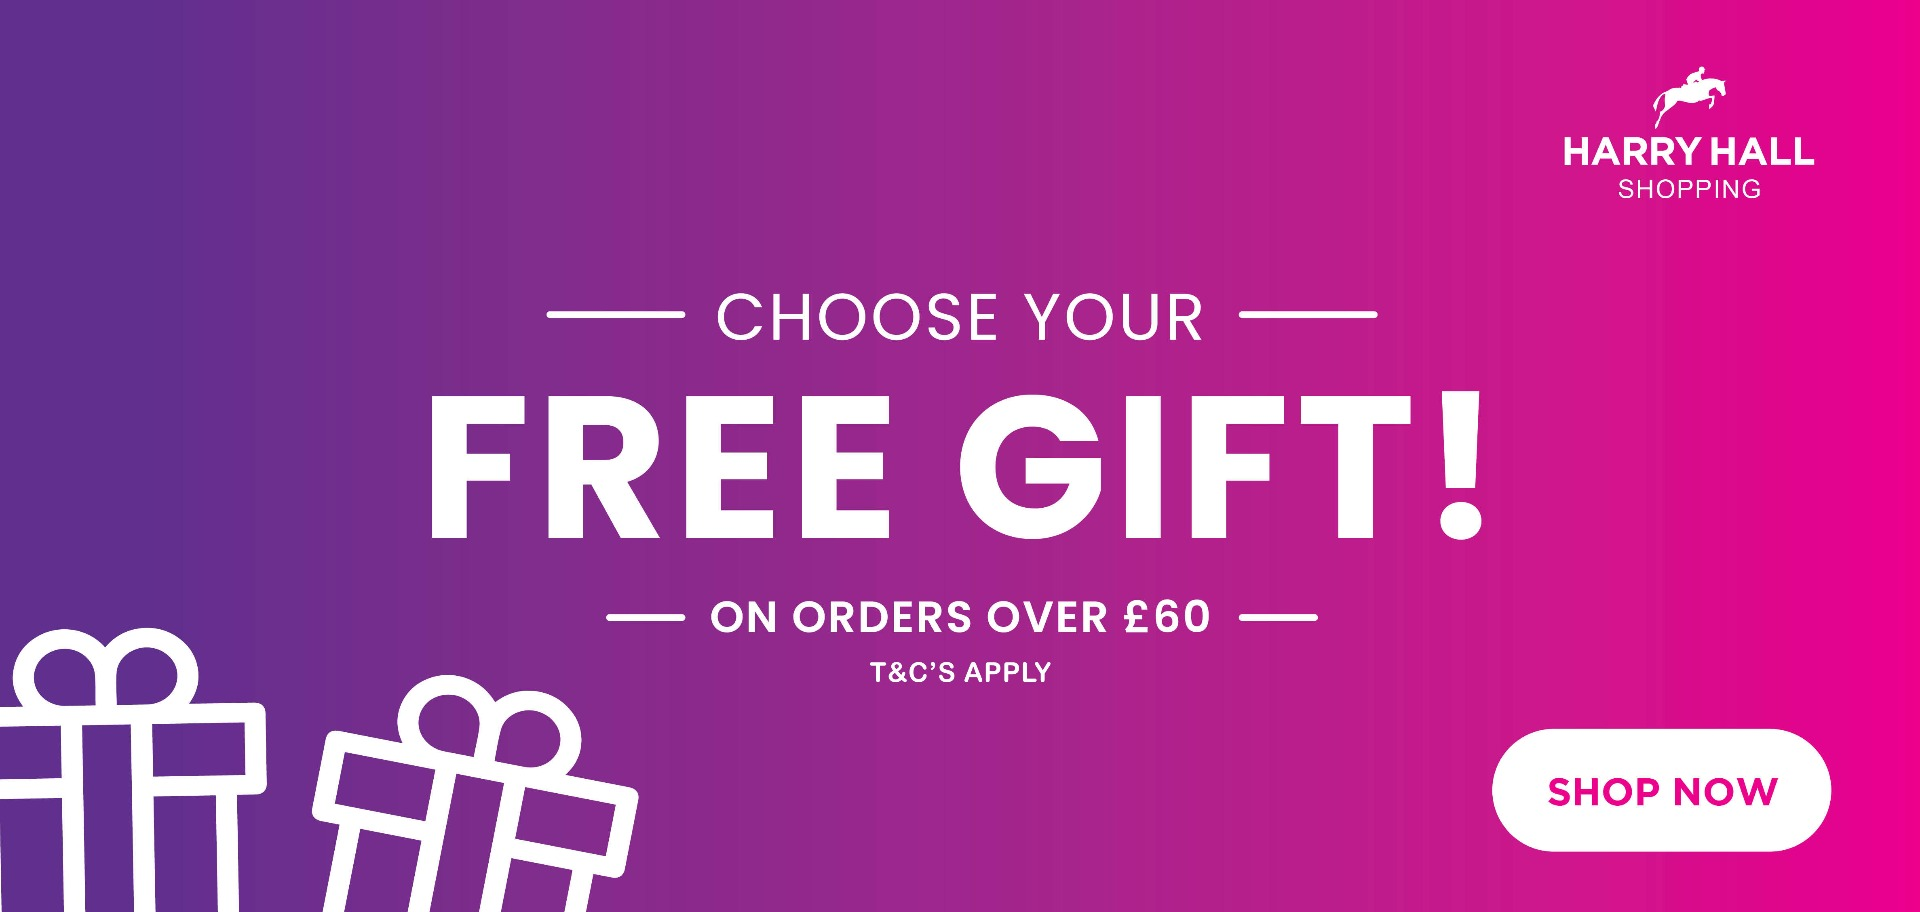 Choose your FREE gift | Harry Hall